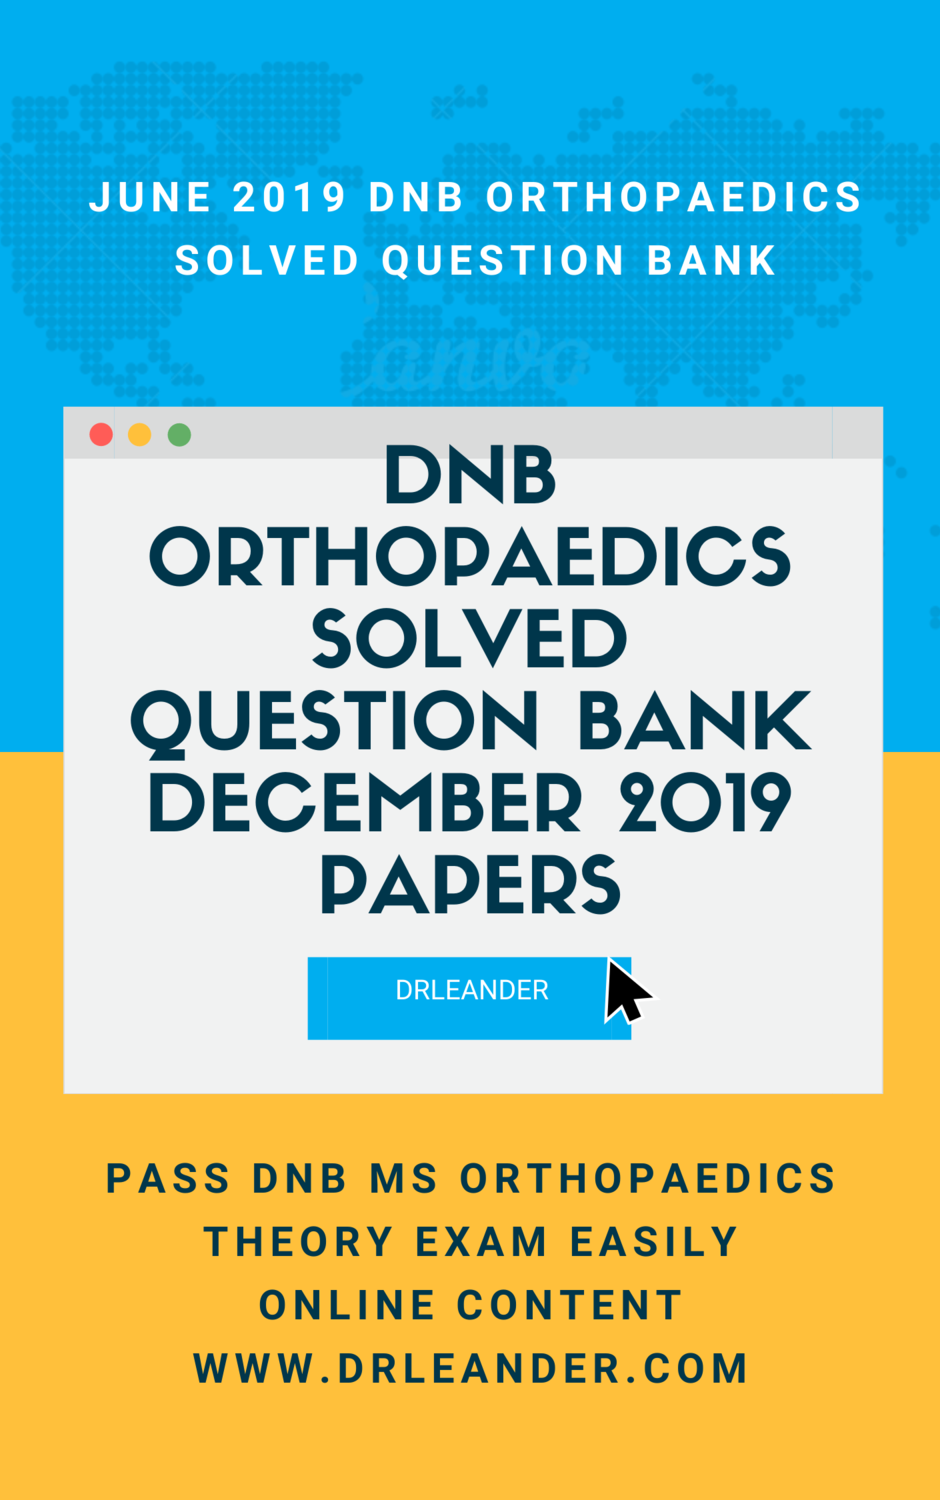 December 2019 DNB Orthopaedic Solved Question Bank Online